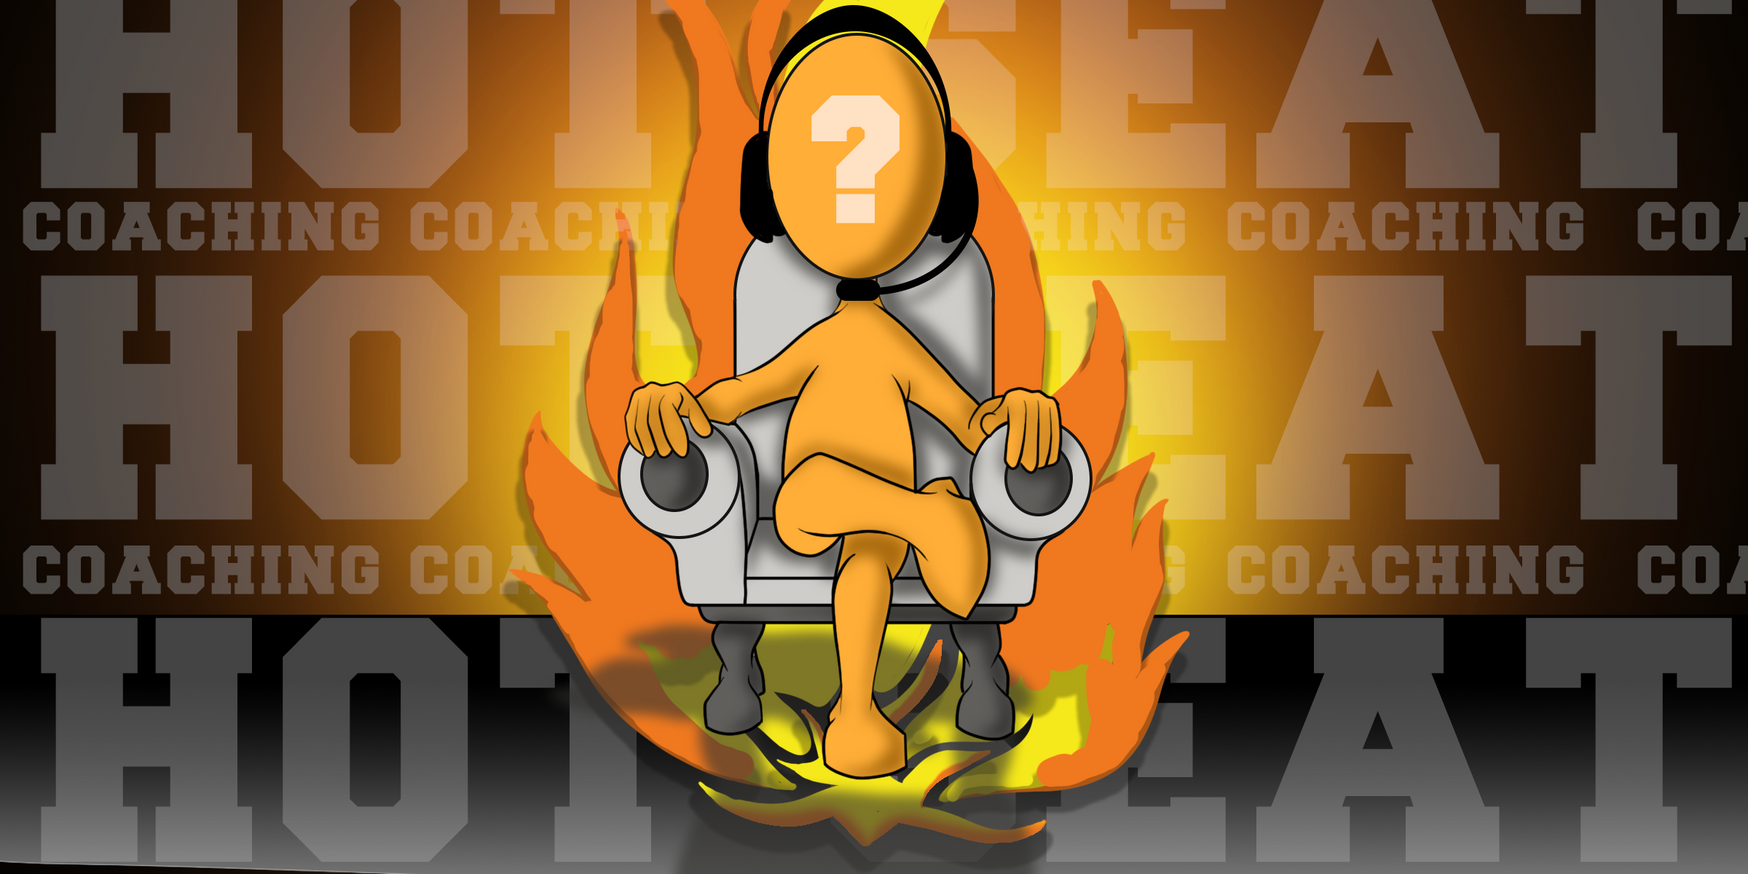 COACHES HOTSEAT.png